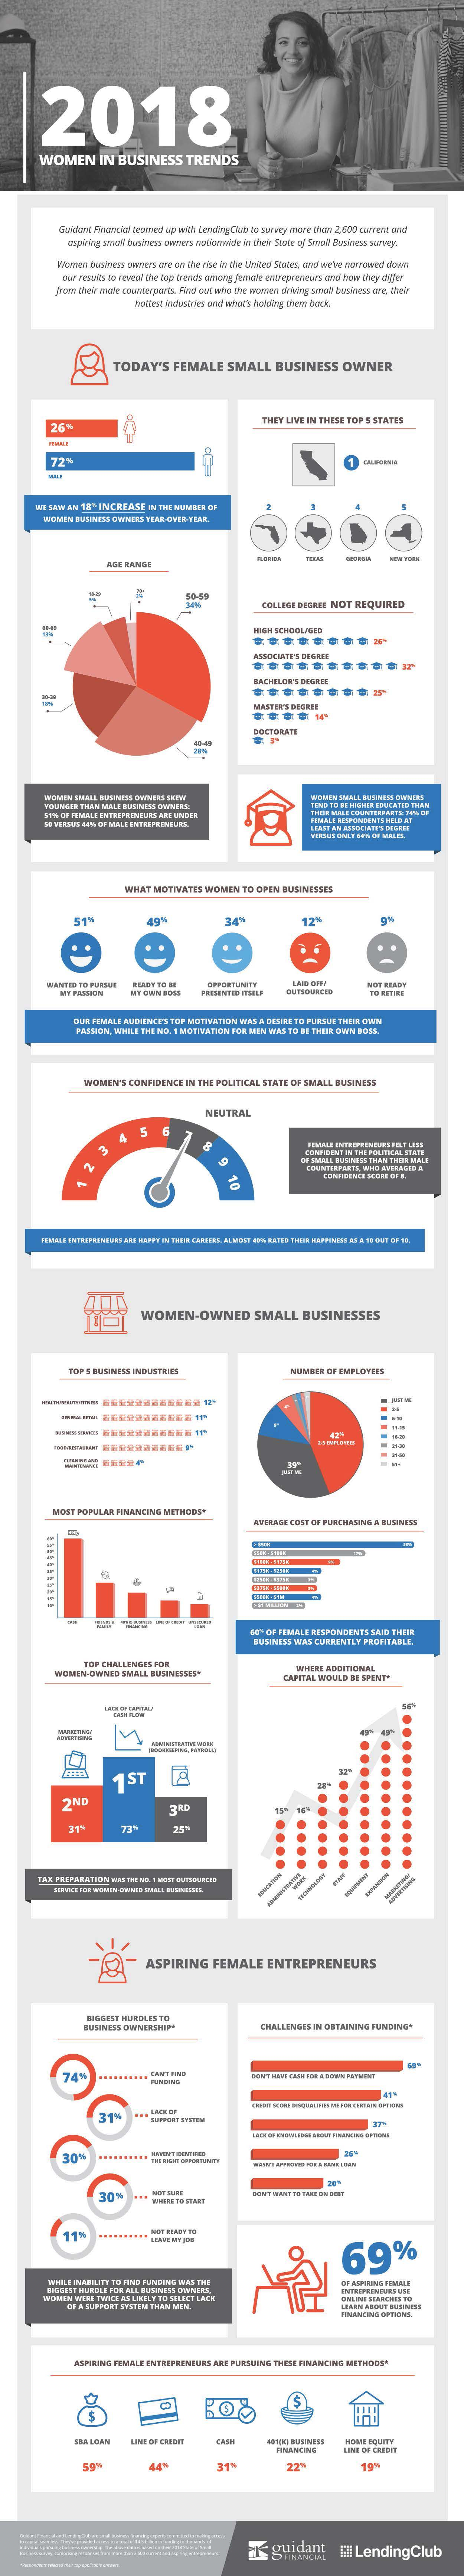 Women in Business Trends: Infographic 2018